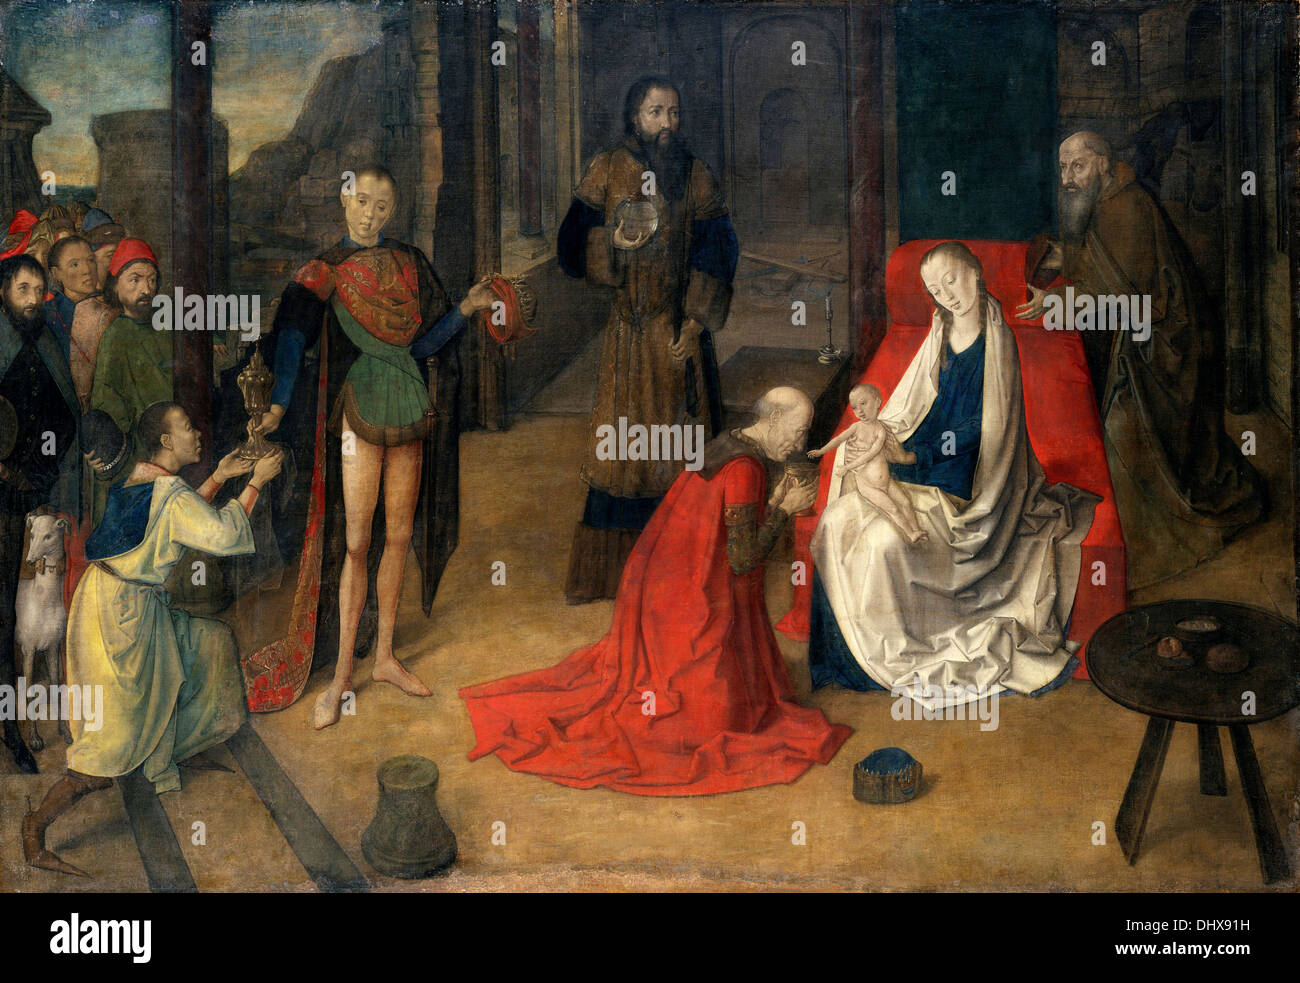 The Adoration of the Magi - by Justus of Ghent, 1465 - Stock Image